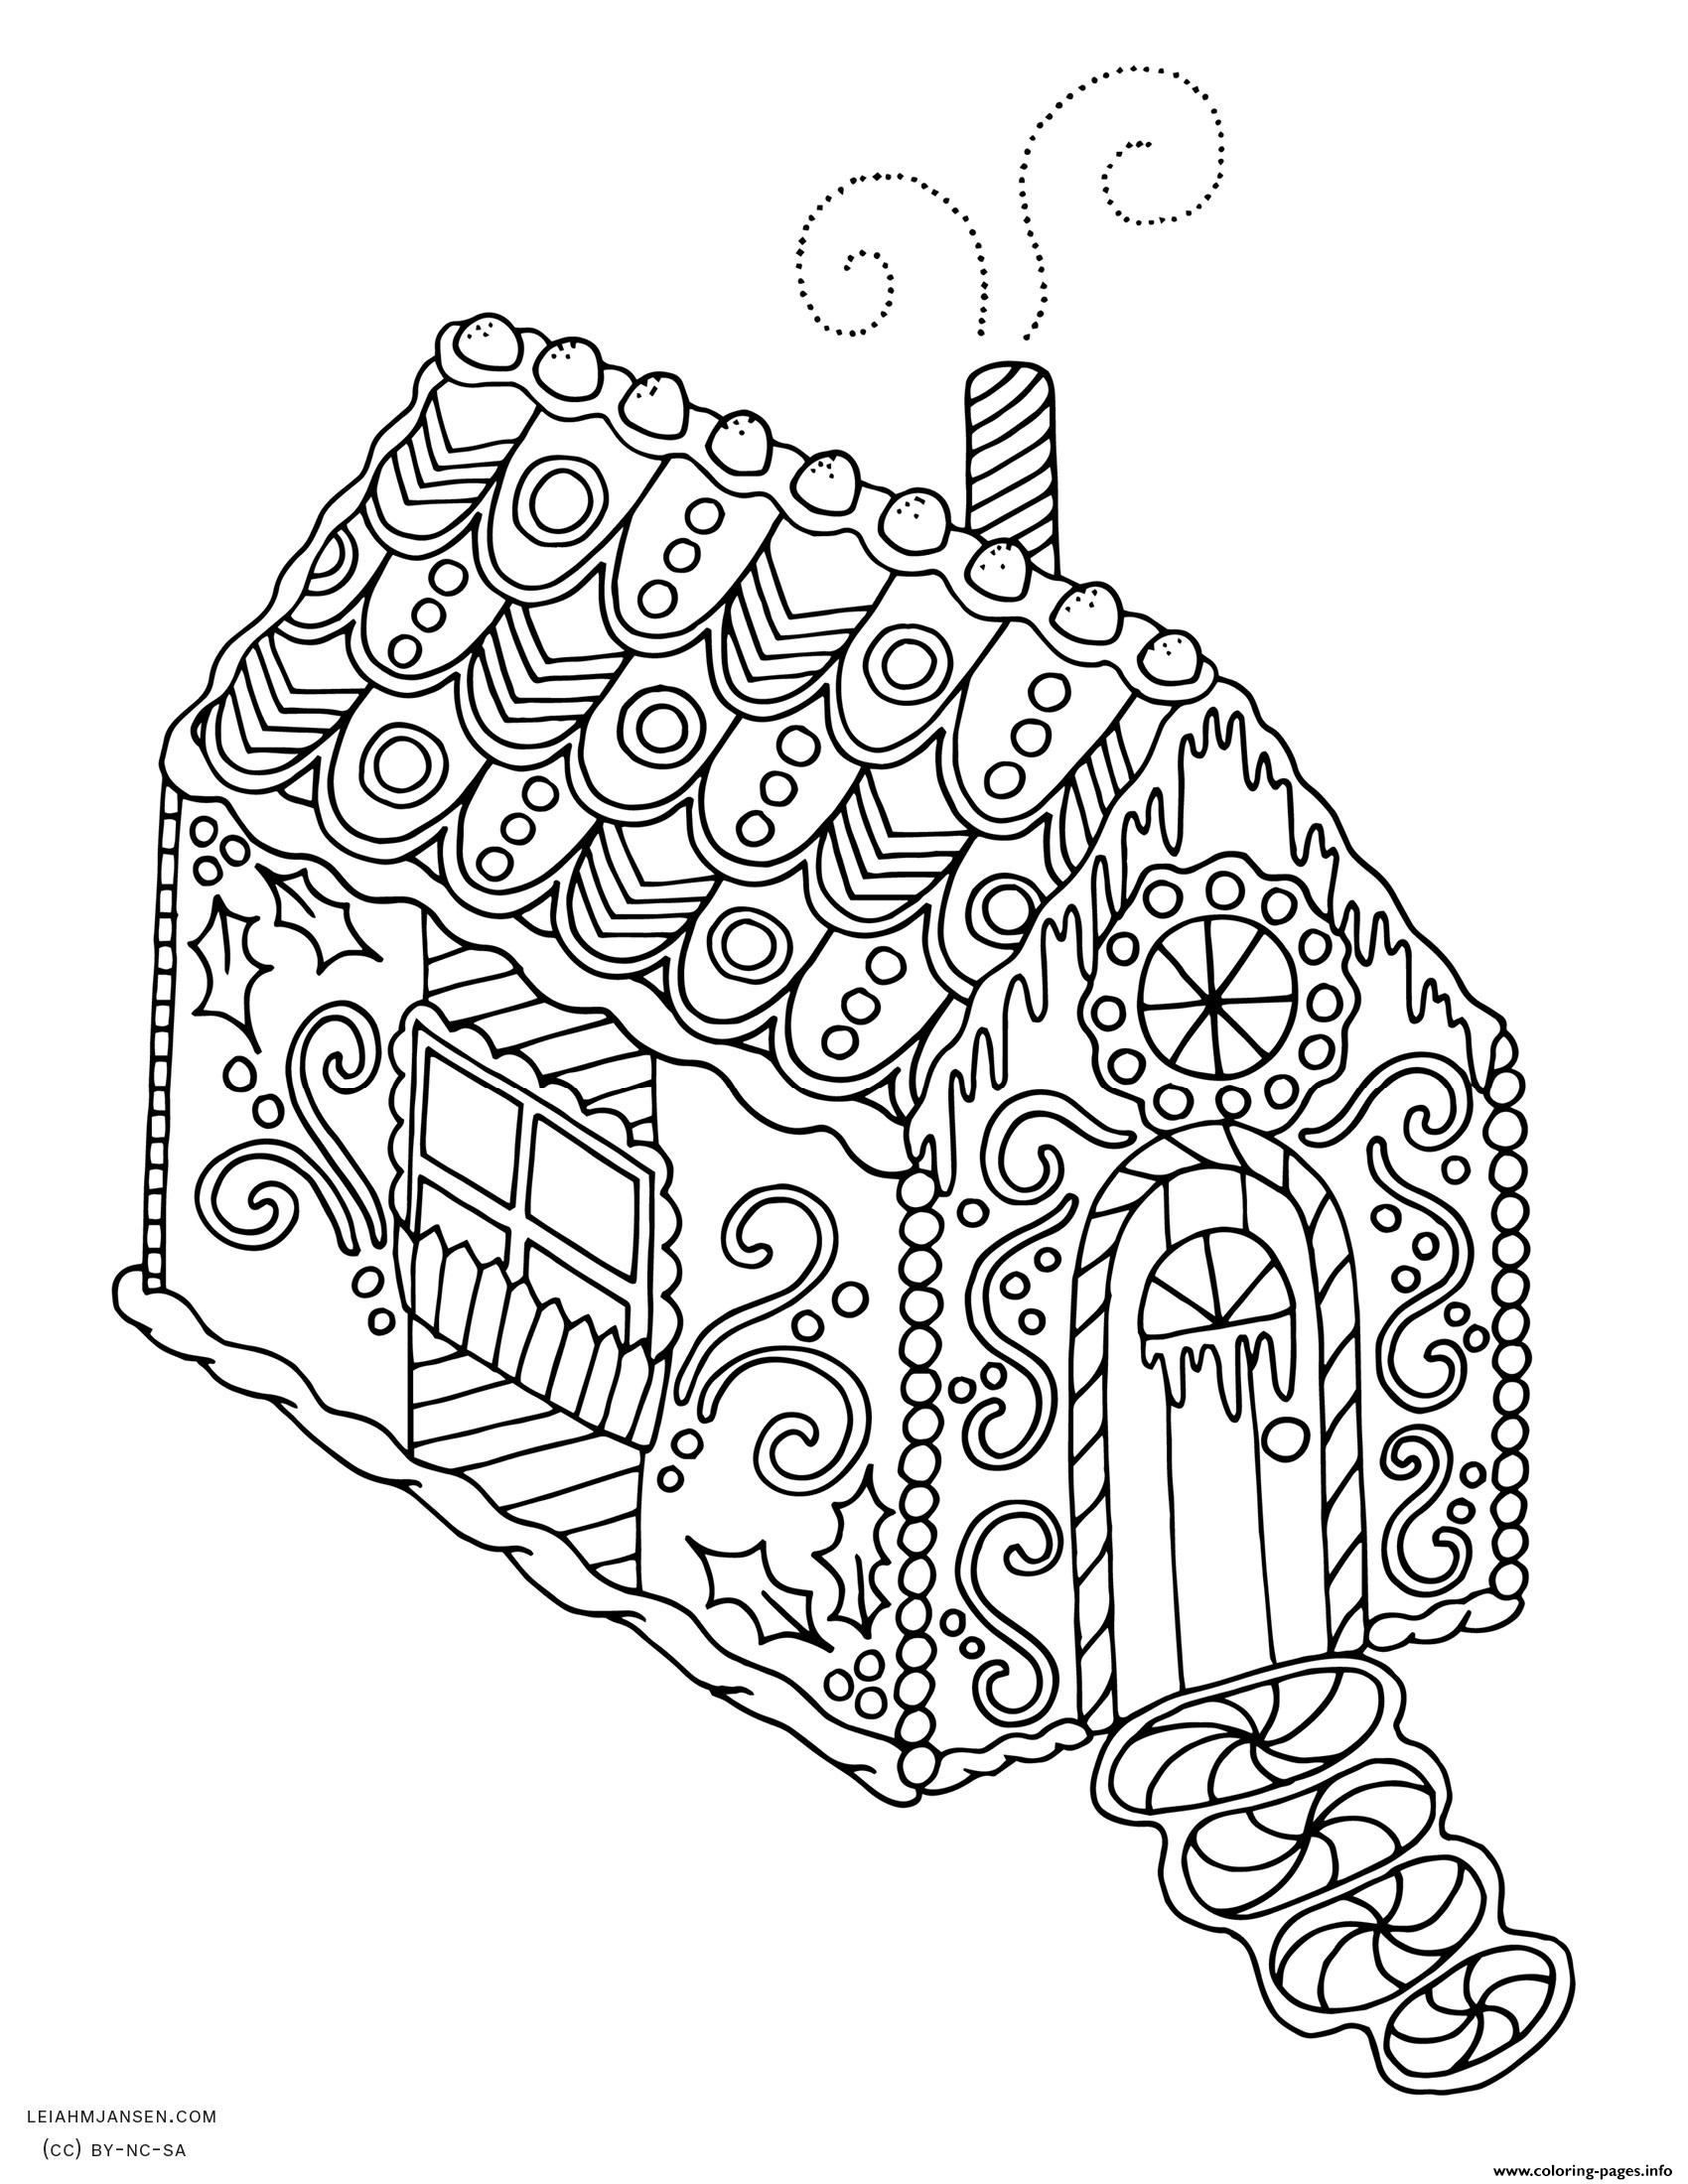 gingerbread house christmas adult coloring pages printable. Black Bedroom Furniture Sets. Home Design Ideas